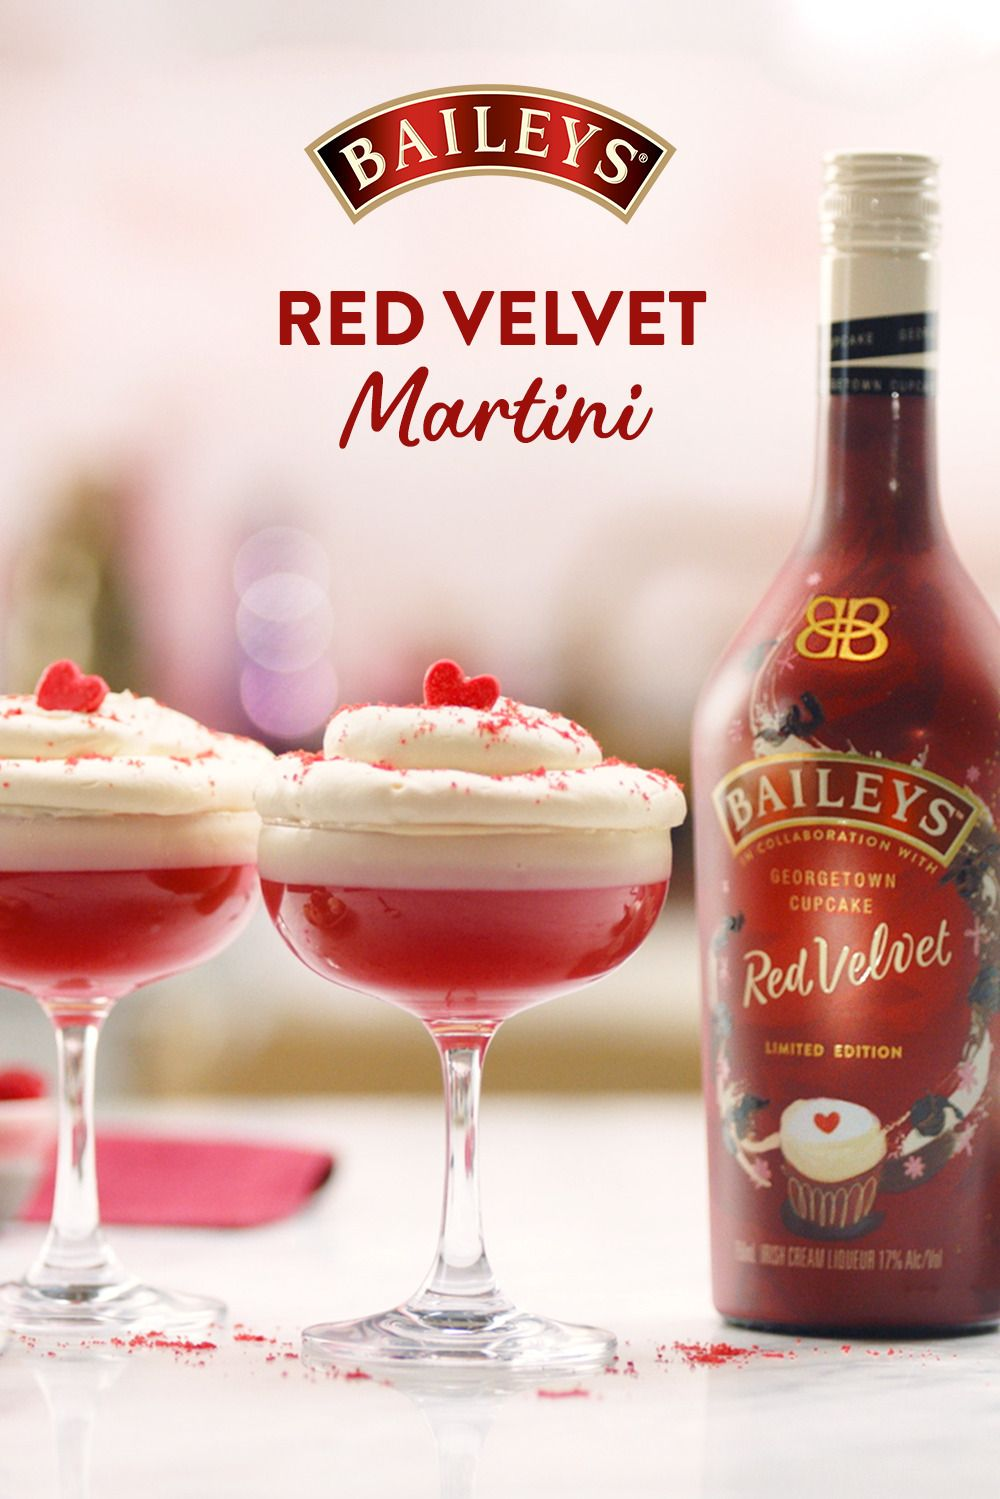 Baileys Red Velvet In 2020 Alcohol Drink Recipes Xmas Food Baileys